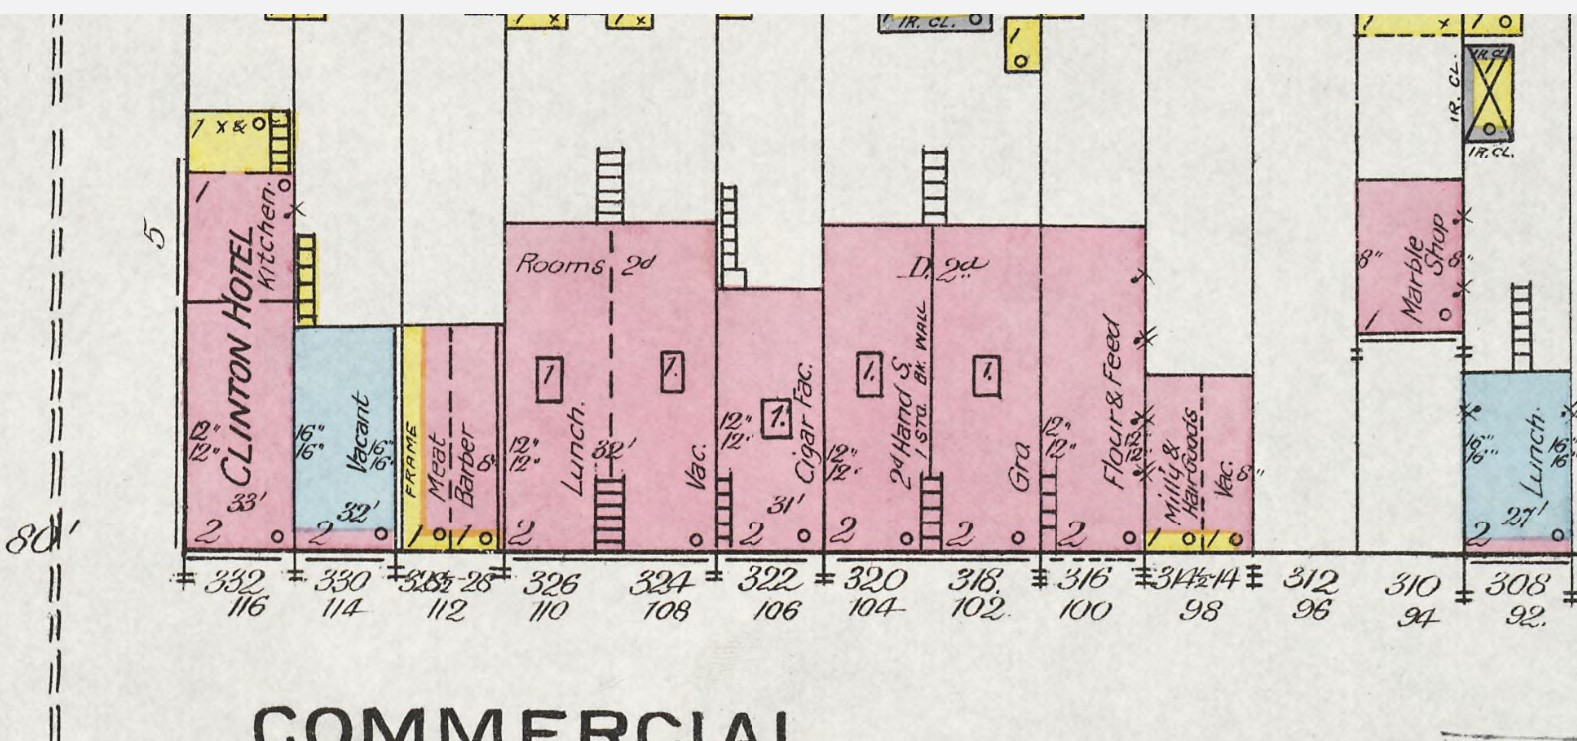 Moore's Block at 324-326 Commercial Street on 1893 Sanborn map (p. 9)